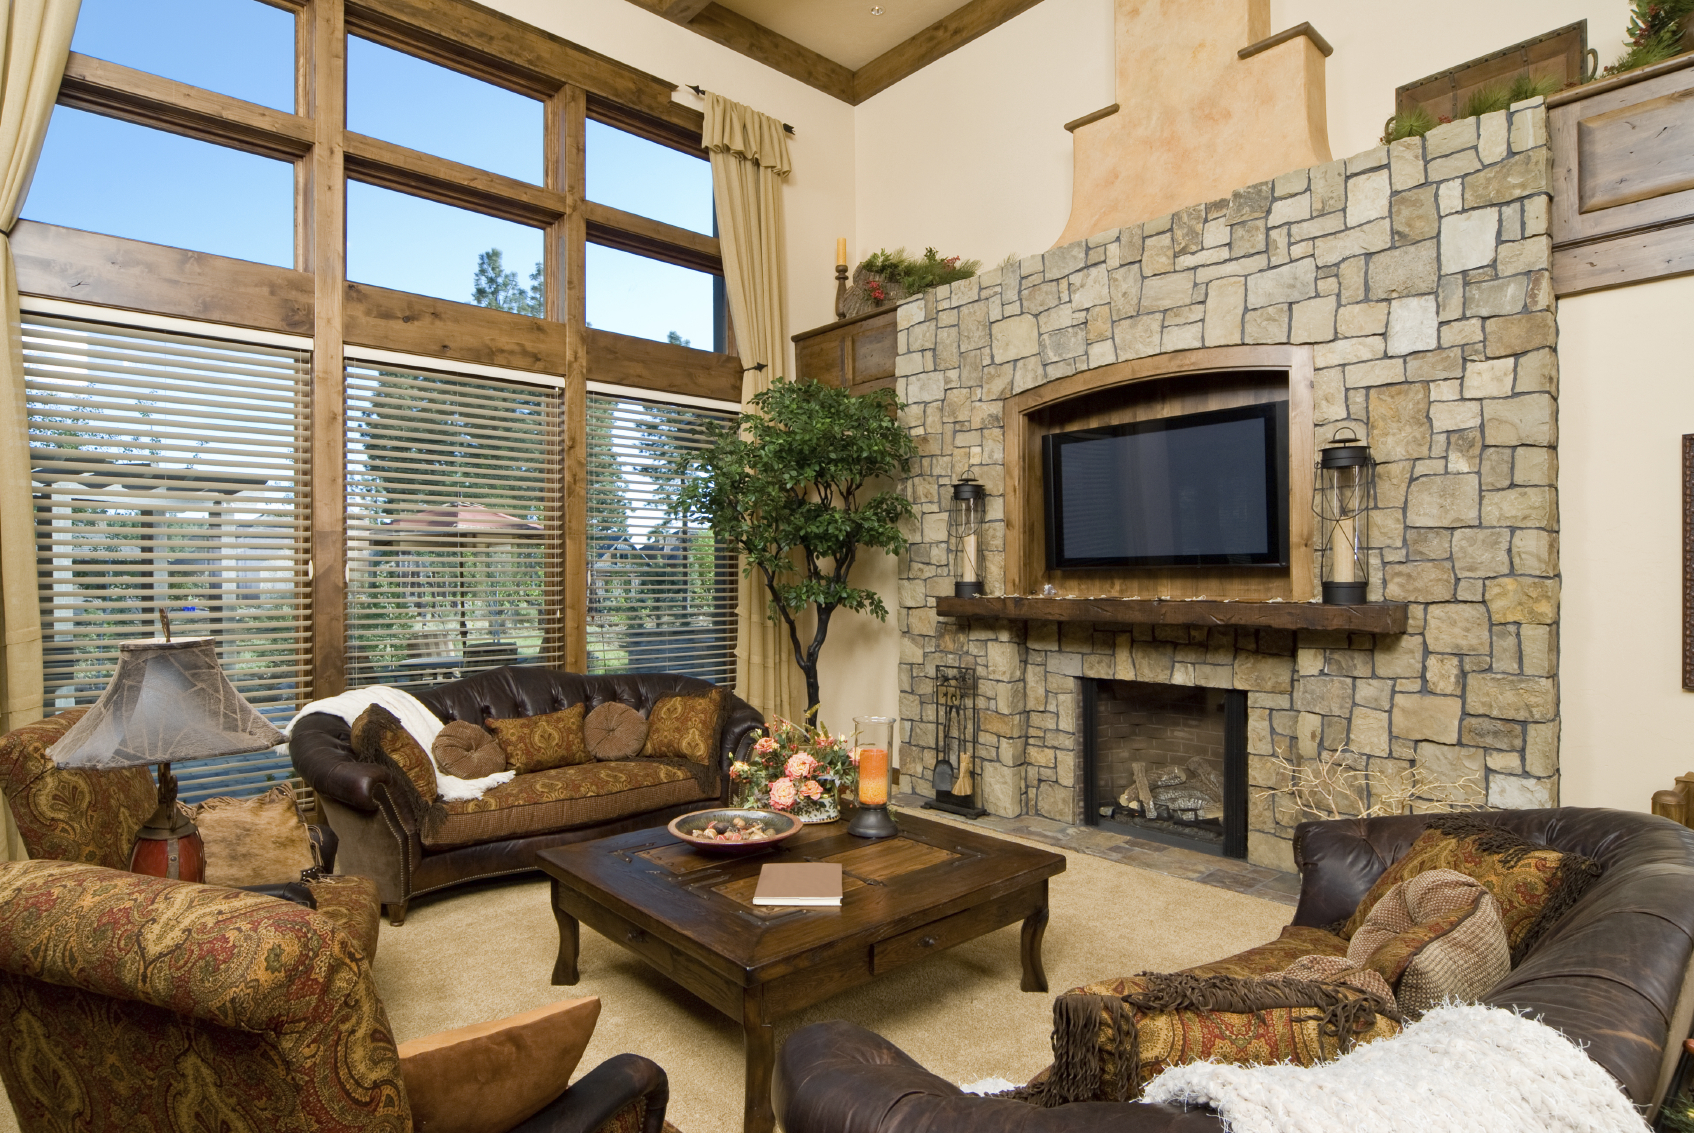 Here's another luxurious, rustic styled room. Wide stone fireplace surround includes wood mantle and TV mount, while camel back leather sofas and patterned armchairs circle a large carved wood coffee table. Natural wood frames full height windows.